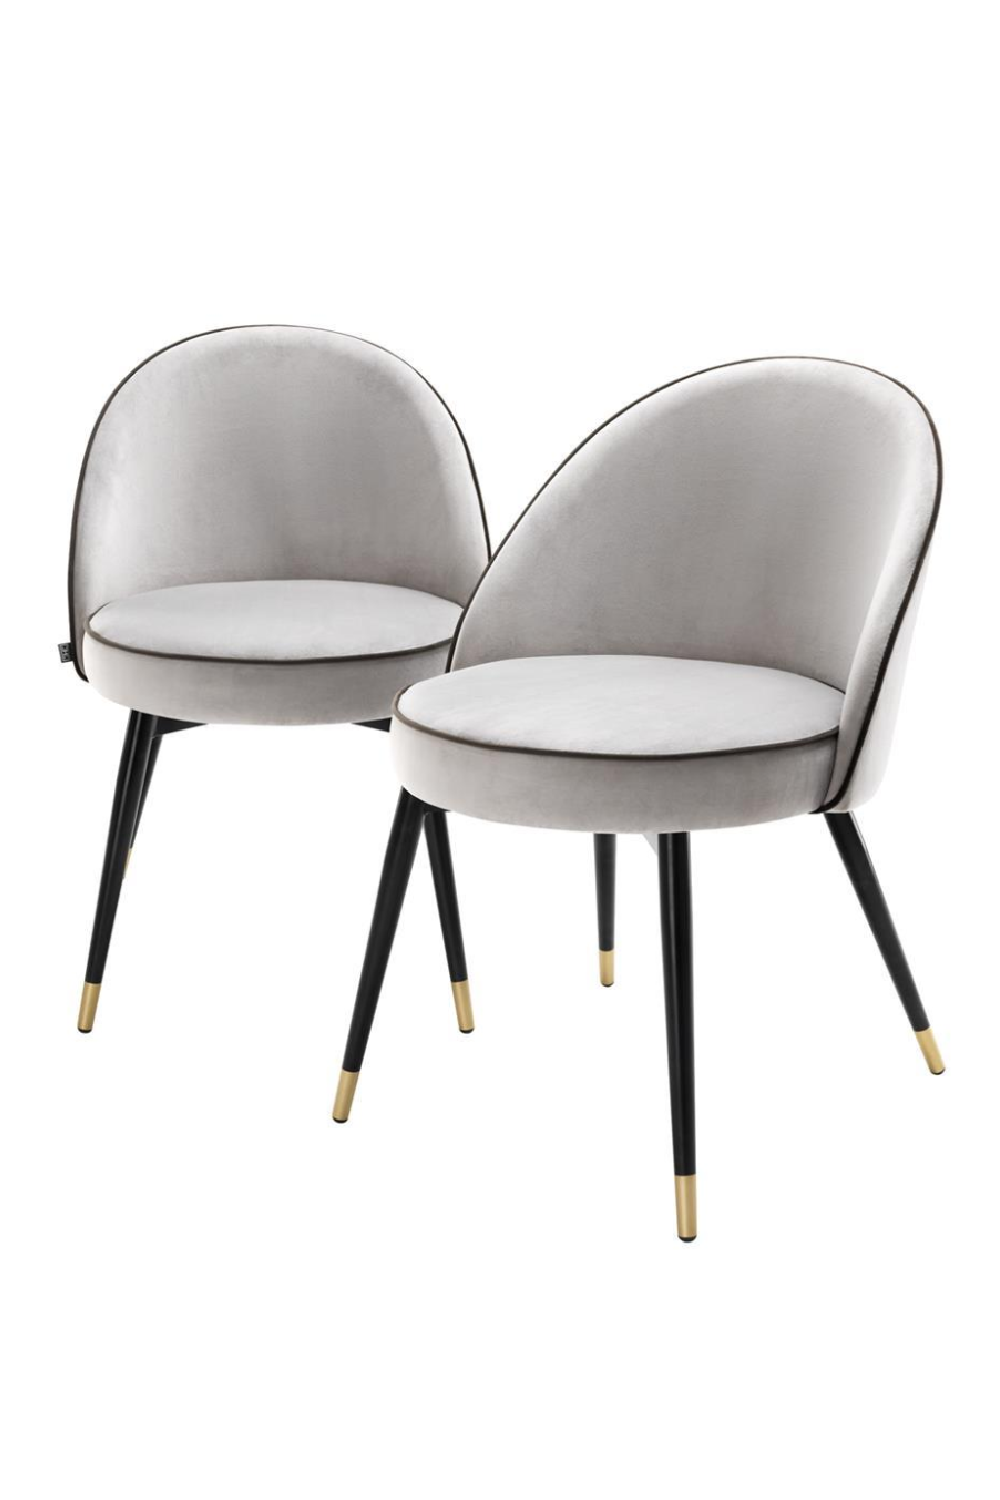 Light Gray Dining Chair | Eichholtz Cooper | #1 Eichholtz Retailer